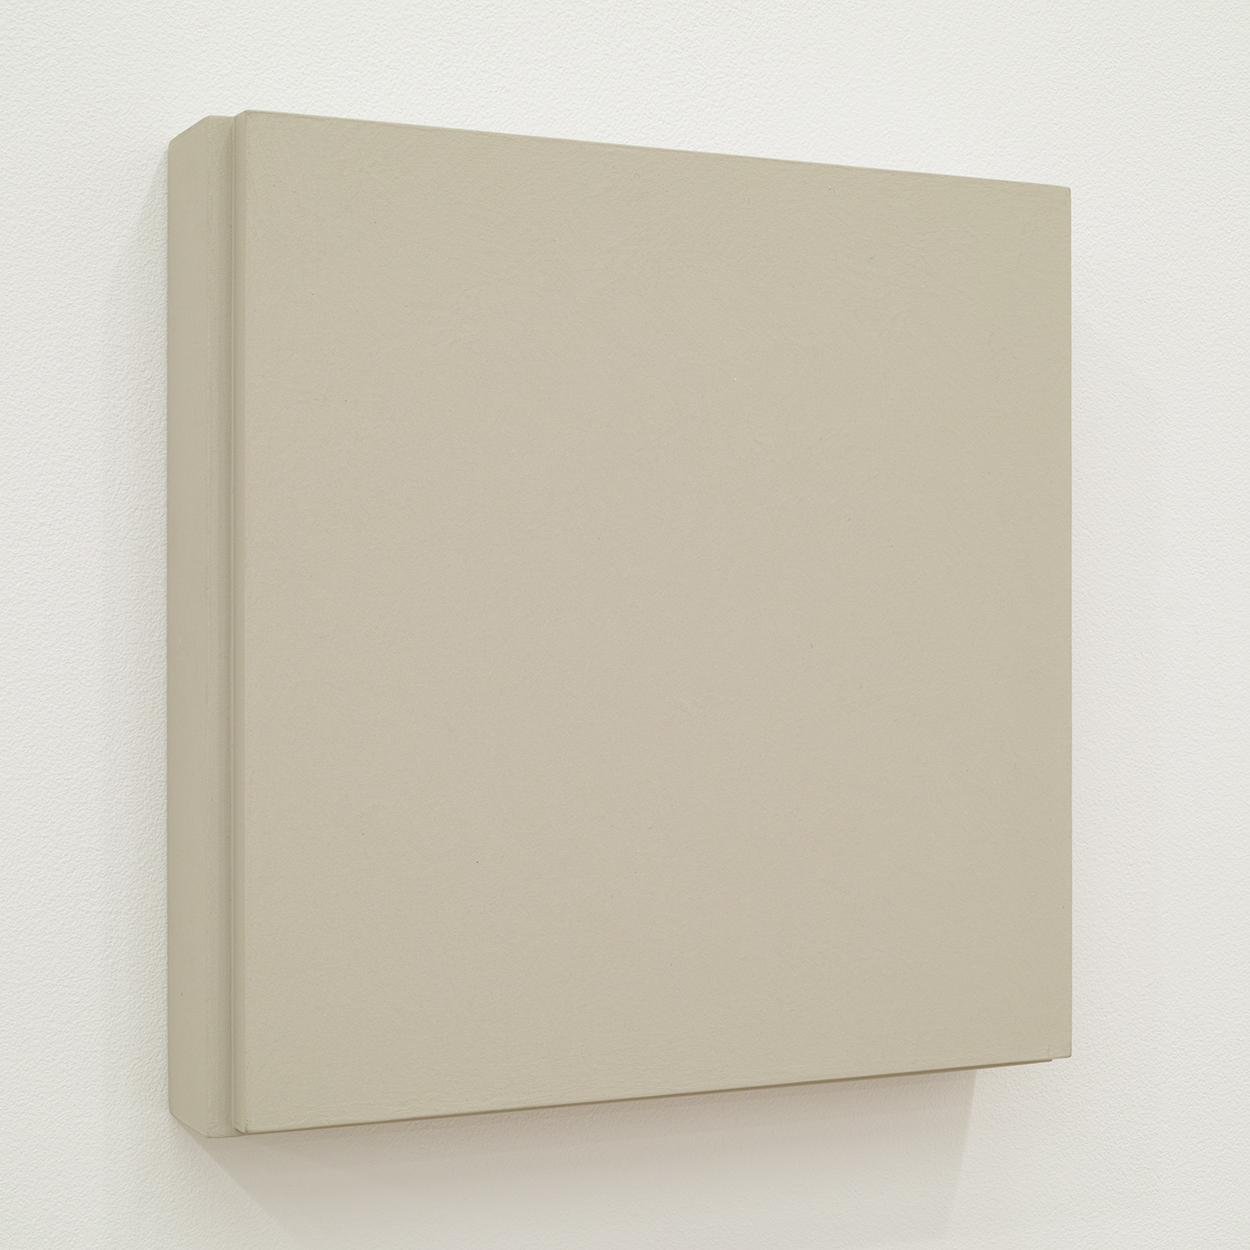 TS1013|Gesso on panel |20 x 20 cm|2012